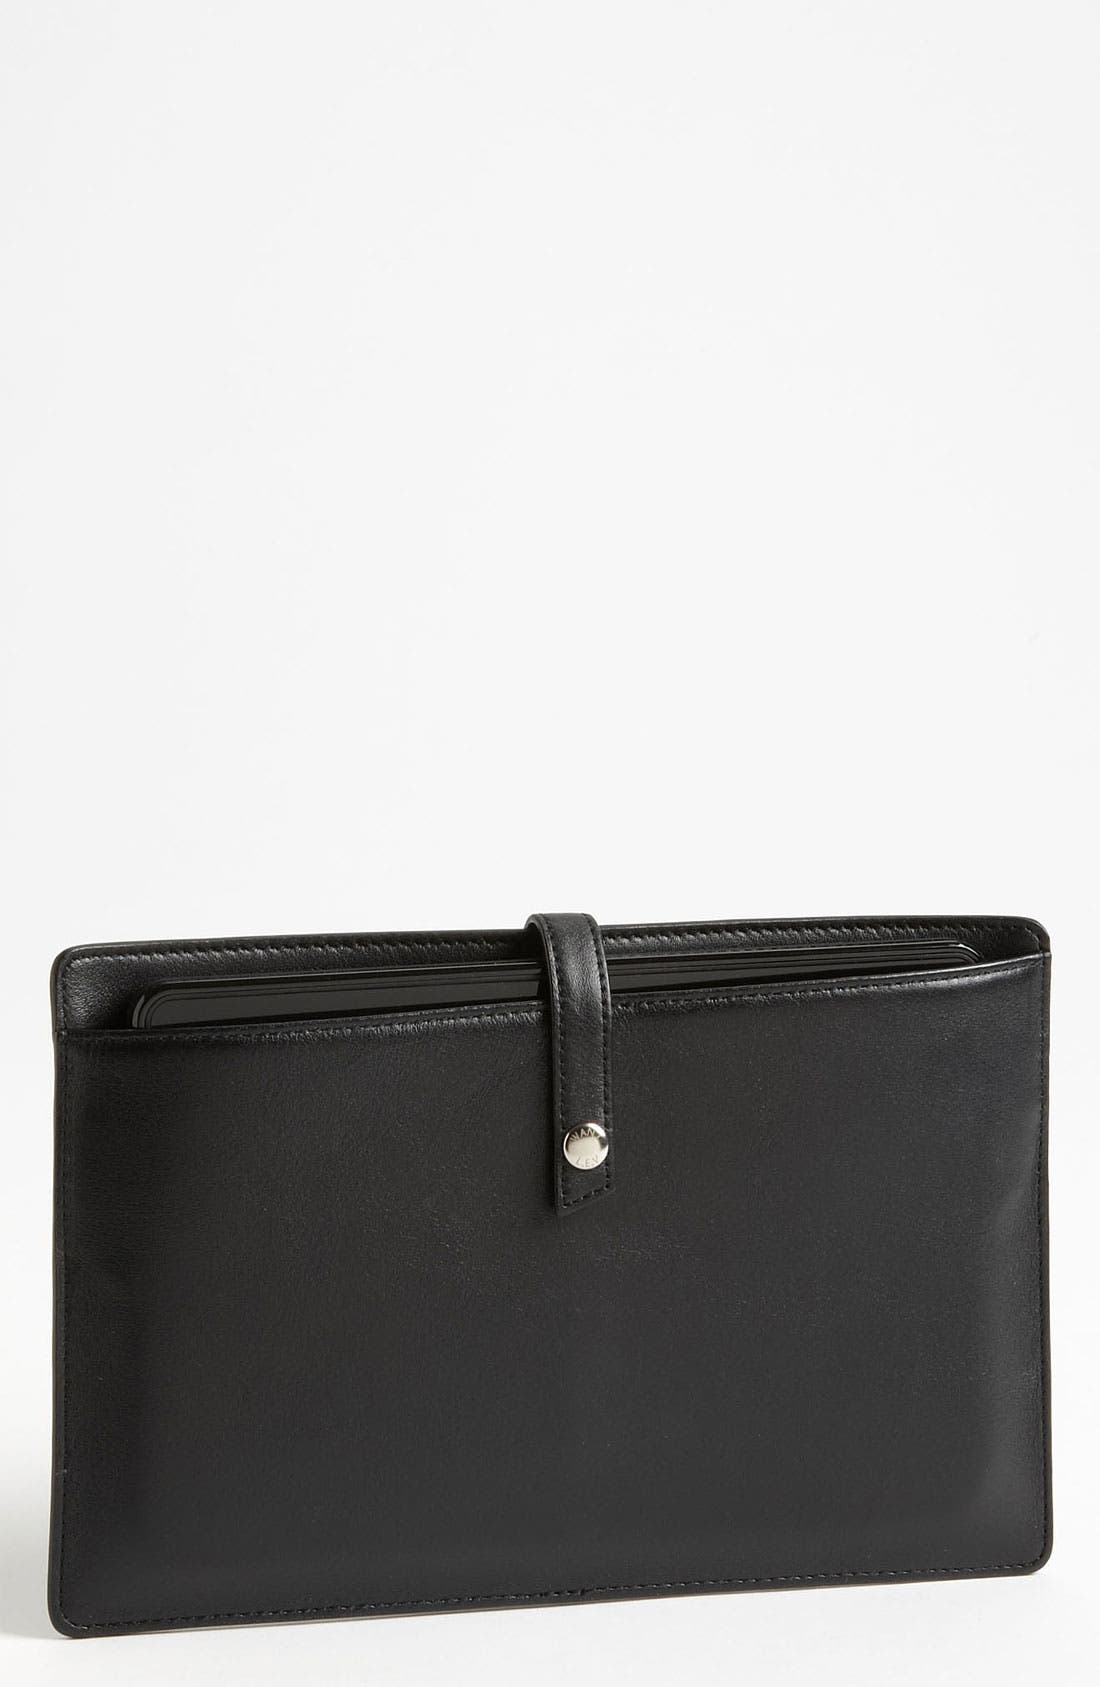 Main Image - WANT Les Essentiels de la Vie 'Cartier' Tablet Sleeve